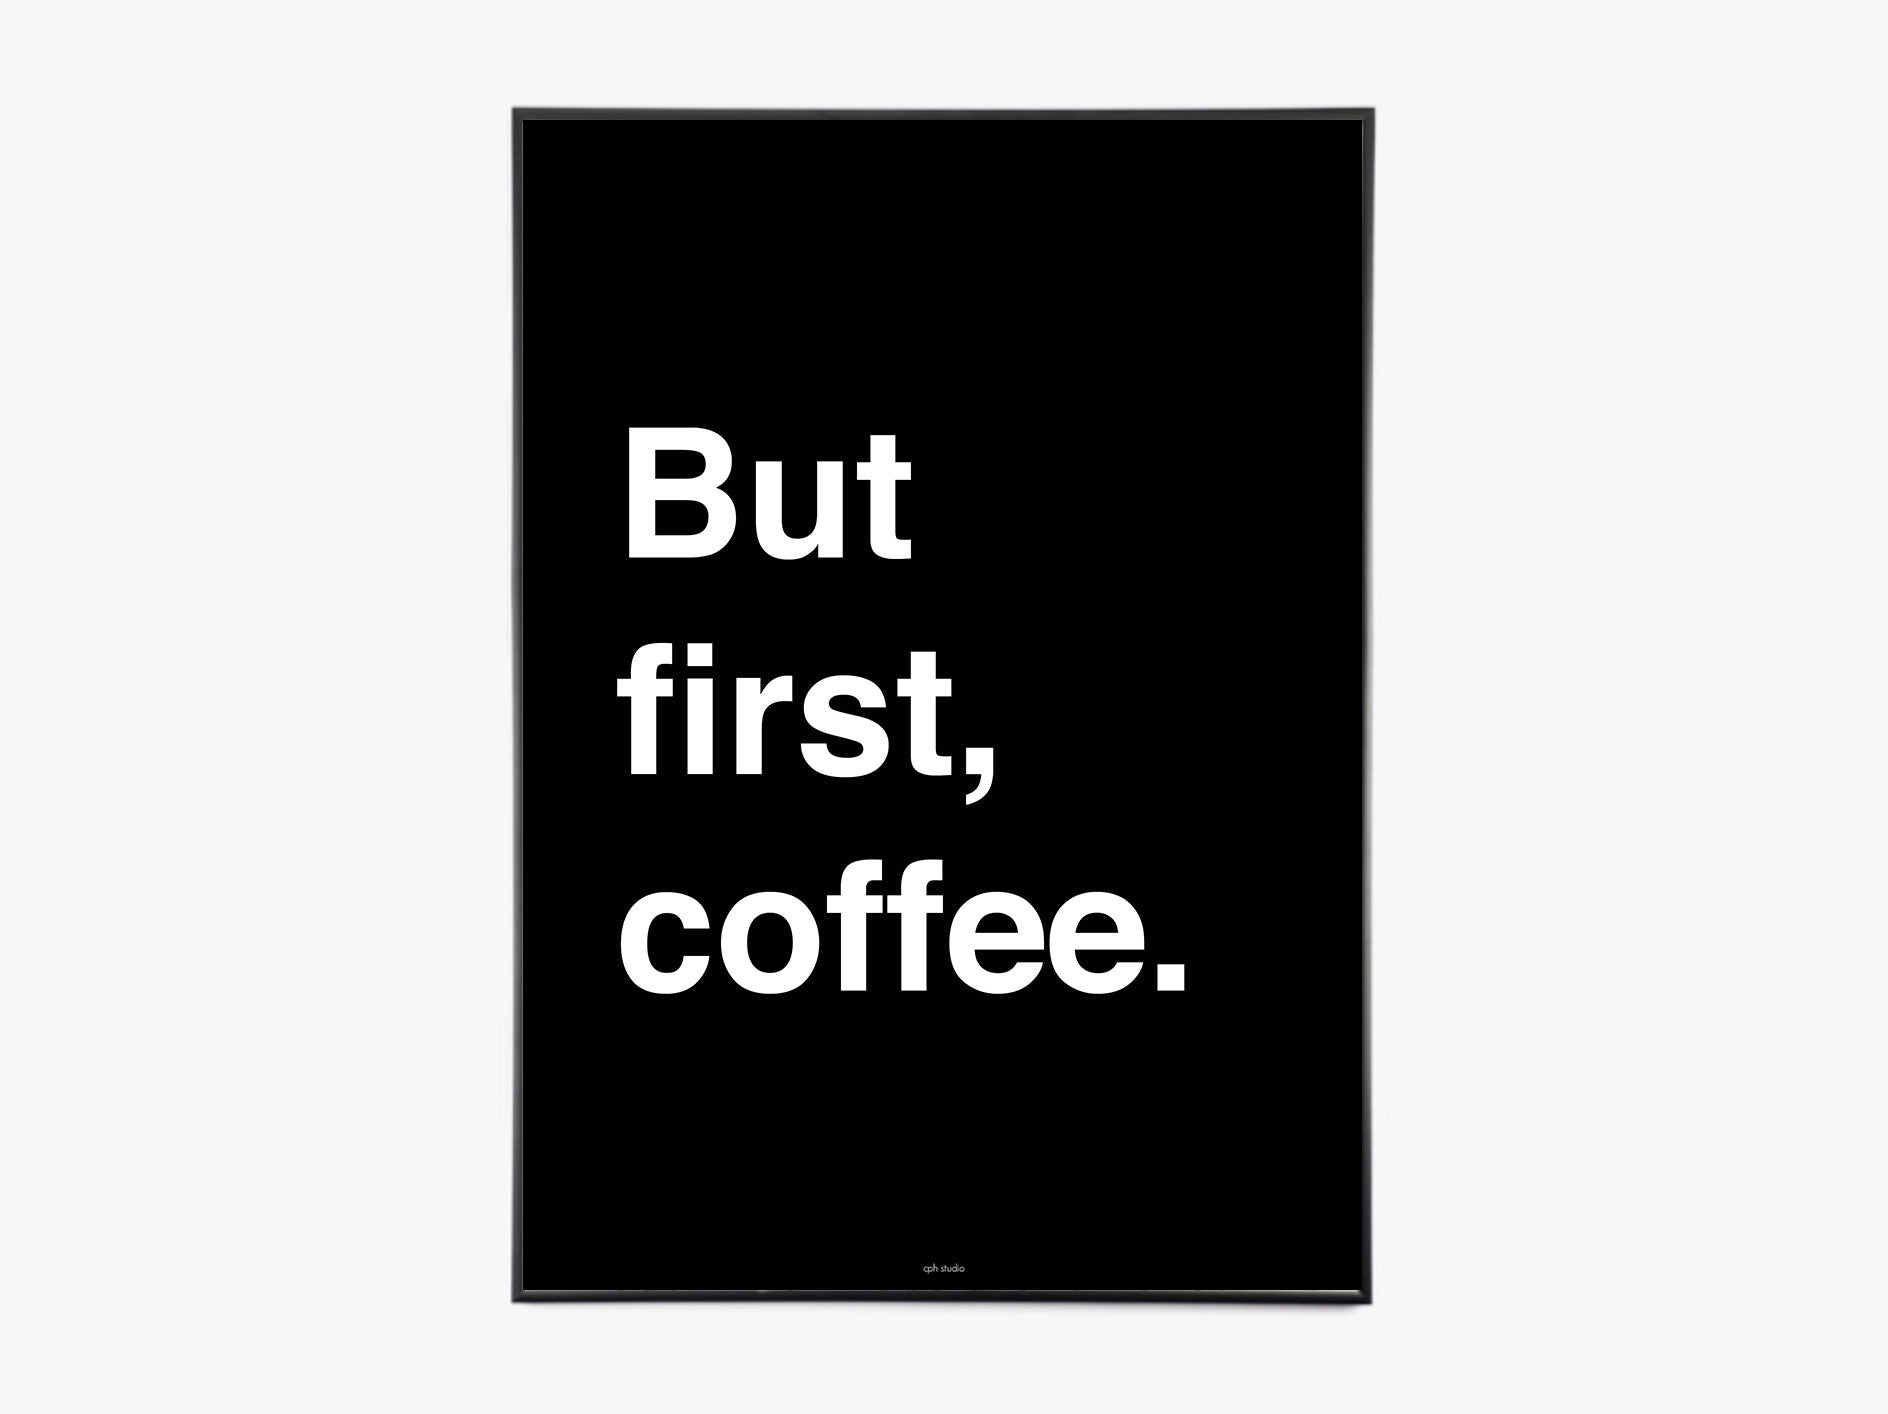 But first coffee, sort - plakat fra CPH STUDIO